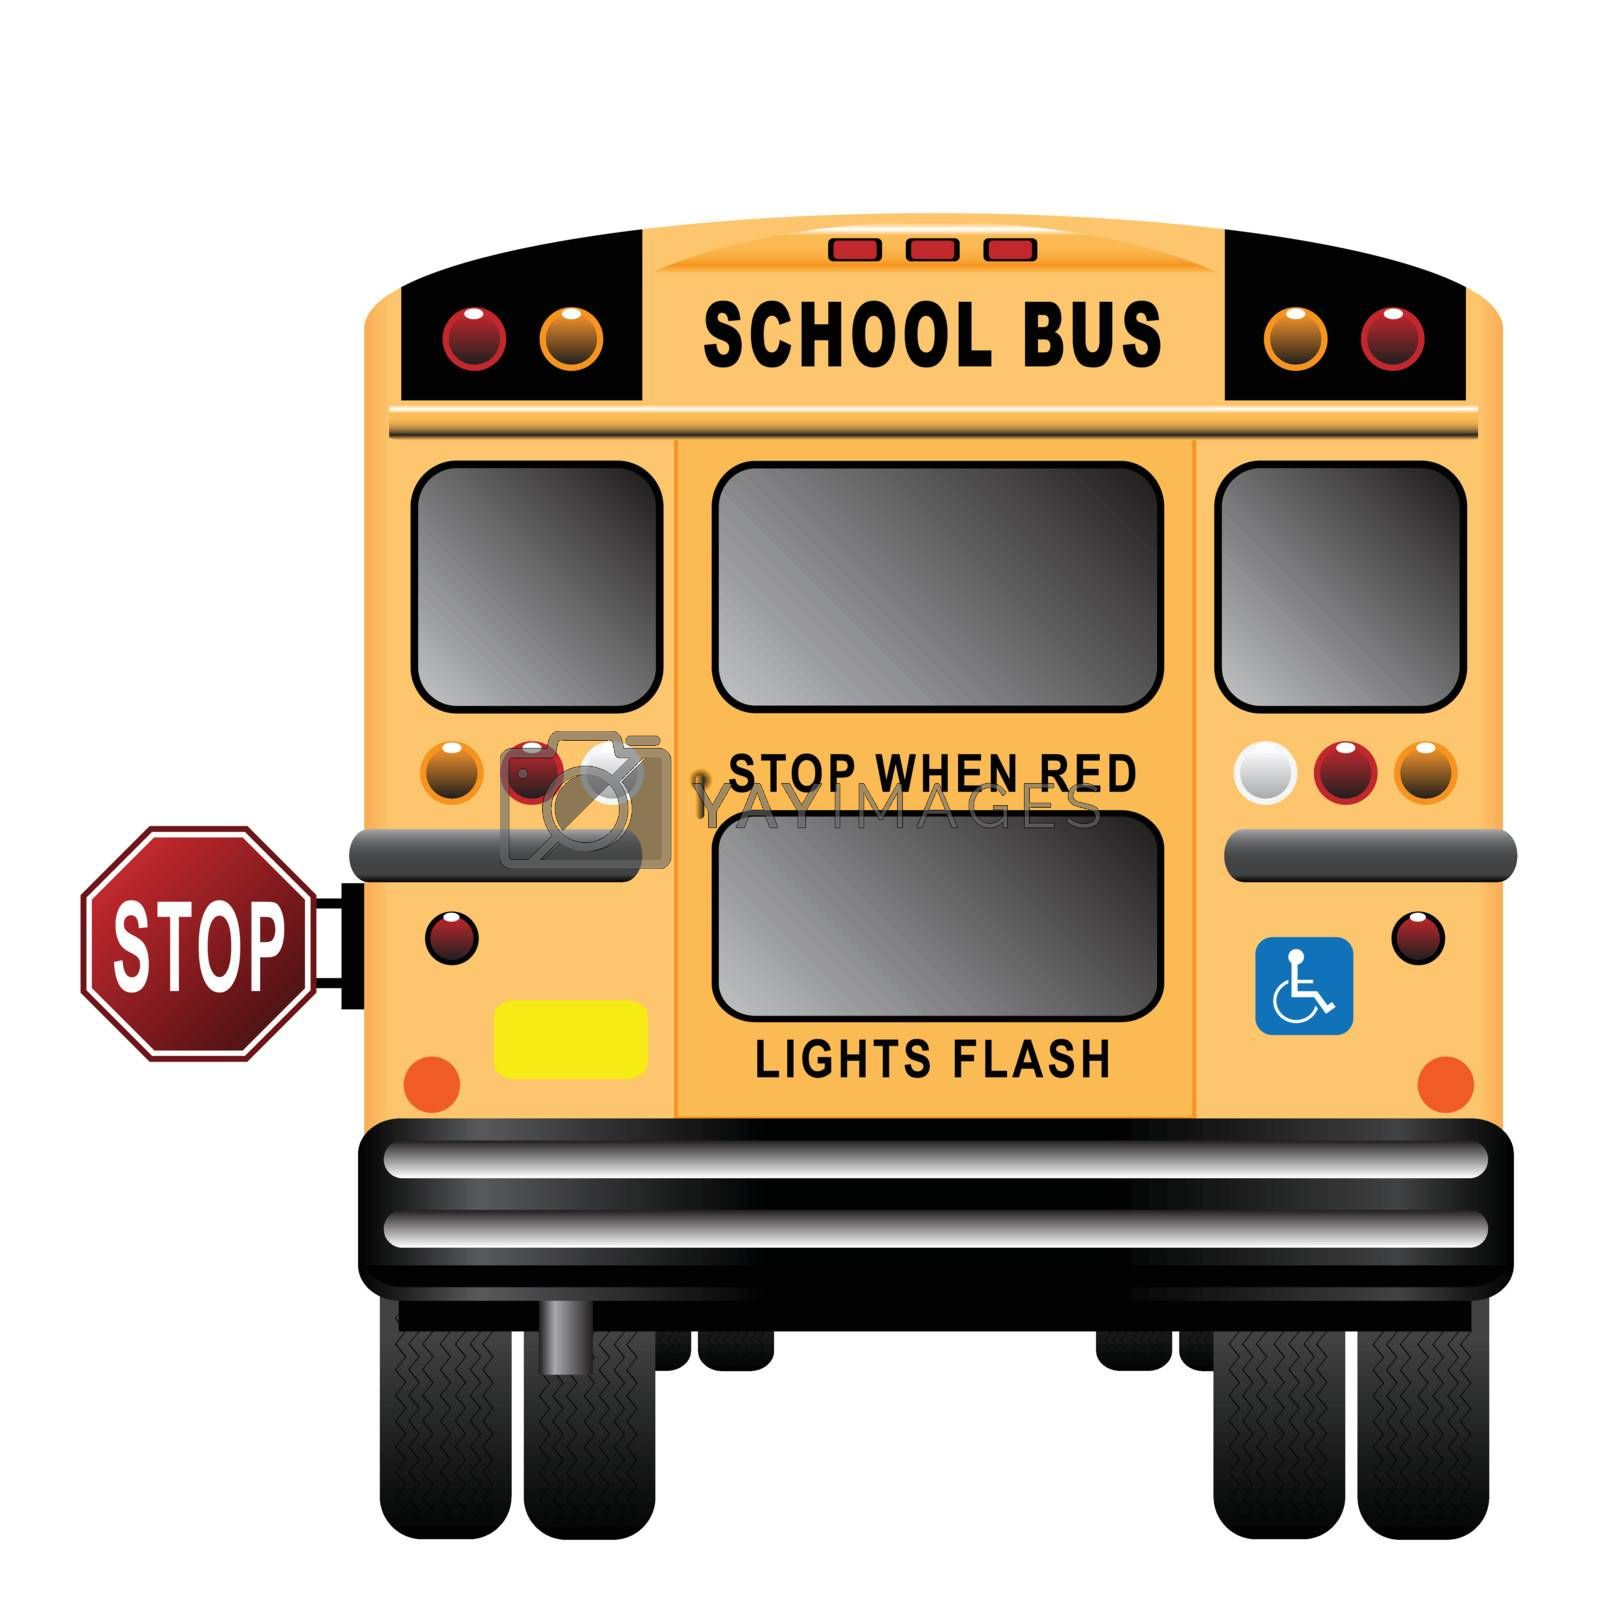 Royalty free image of School Bus Illustration by ajn